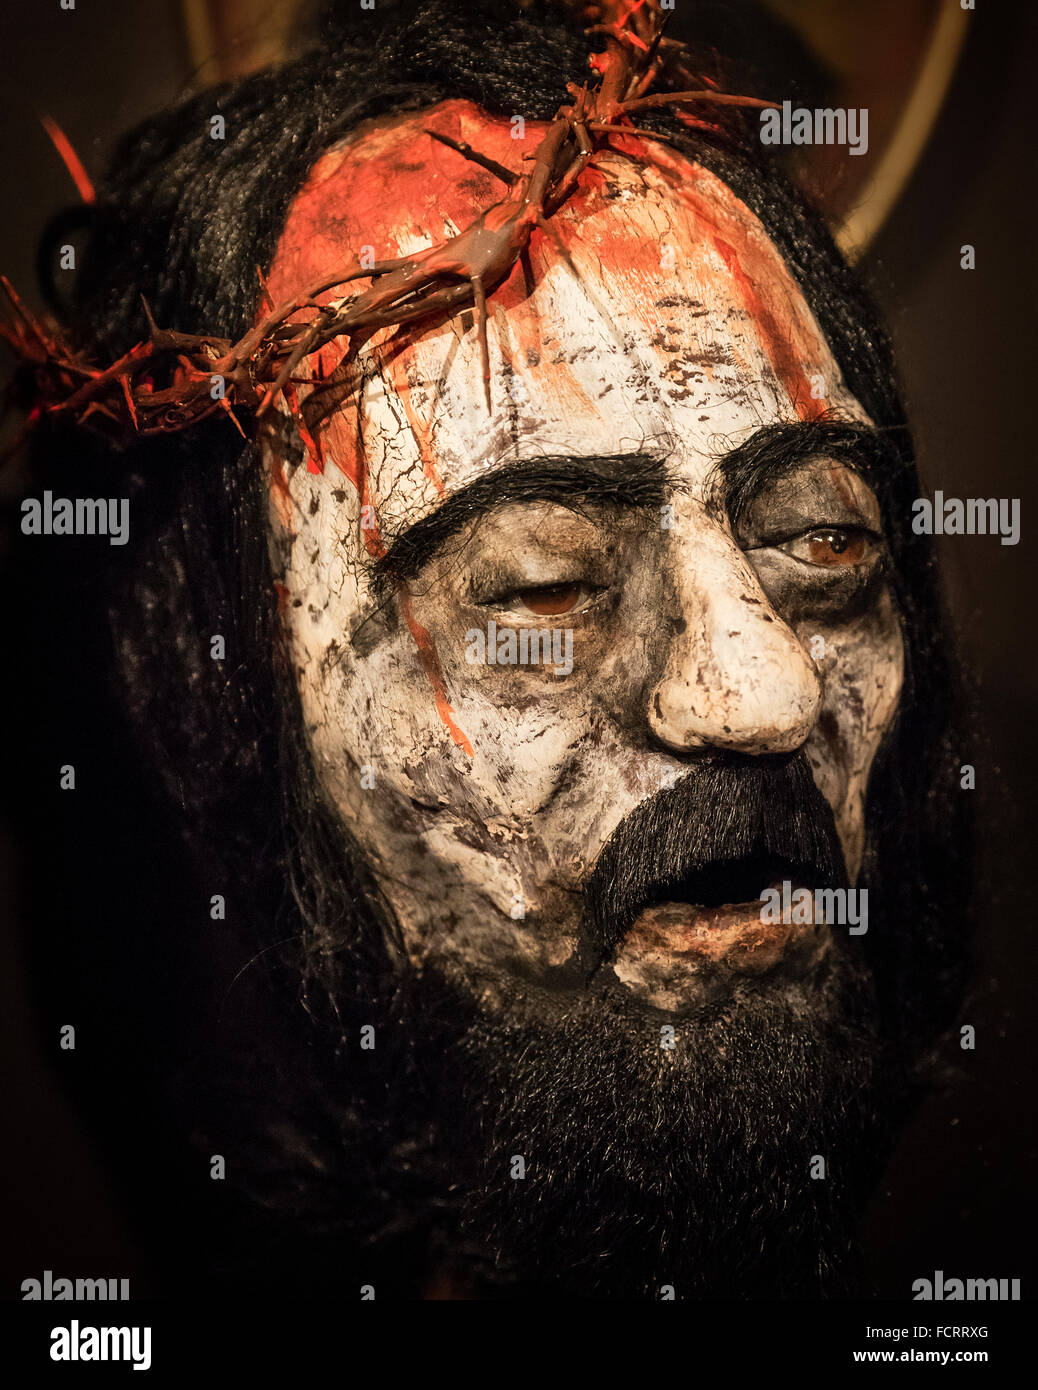 The Passion of Christ figure with crown of thorns. - Stock Image